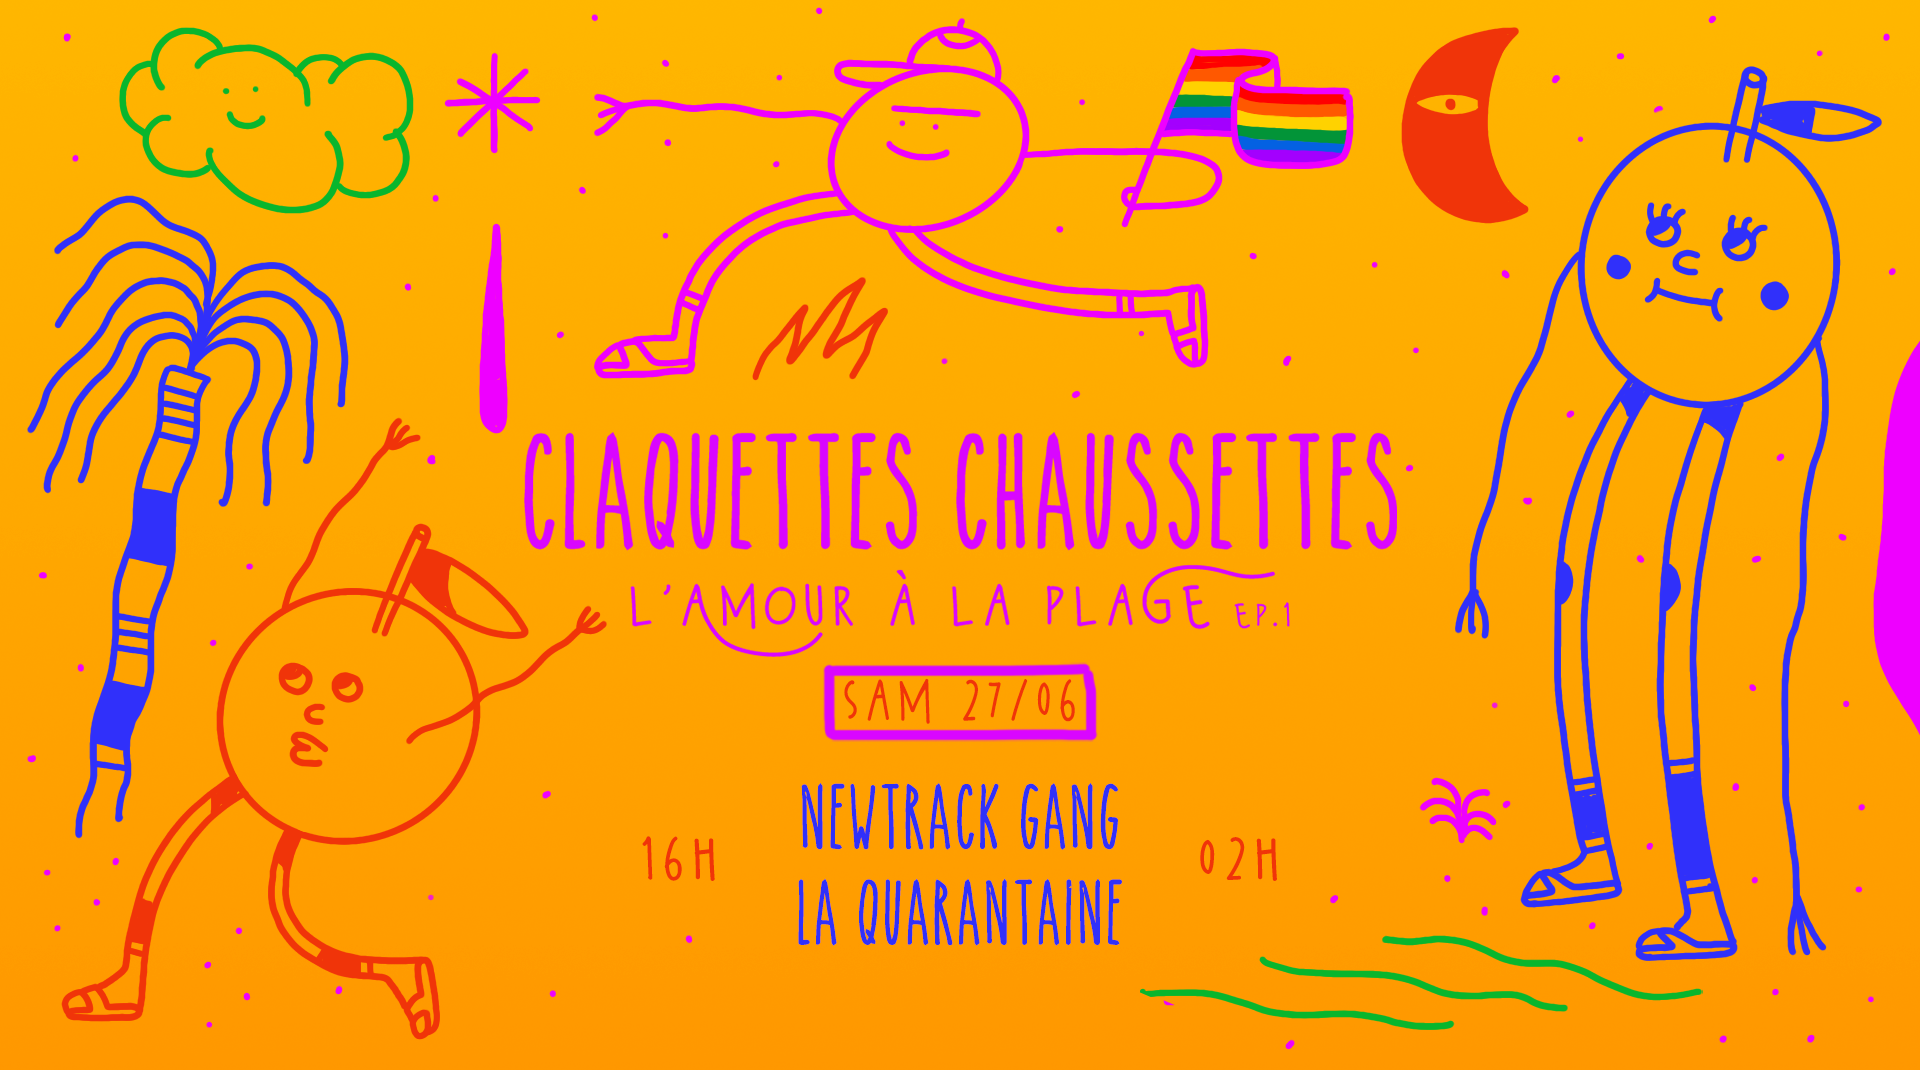 Complet I Claquettes Chaussettes (opening) w/ Newtrack & La Quarantaine